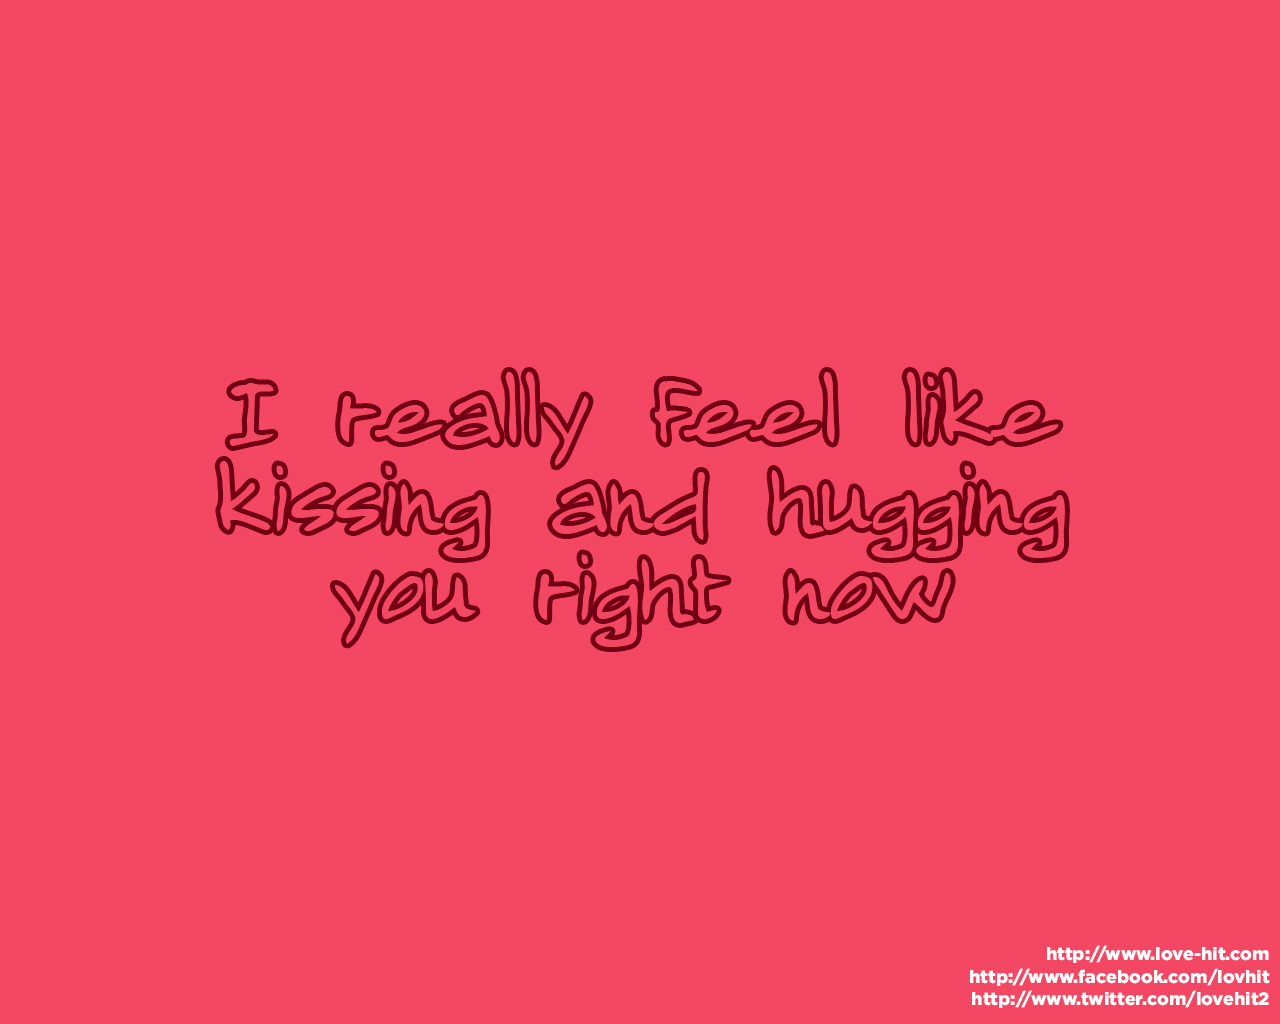 I really feel like kissing and hugging you right now